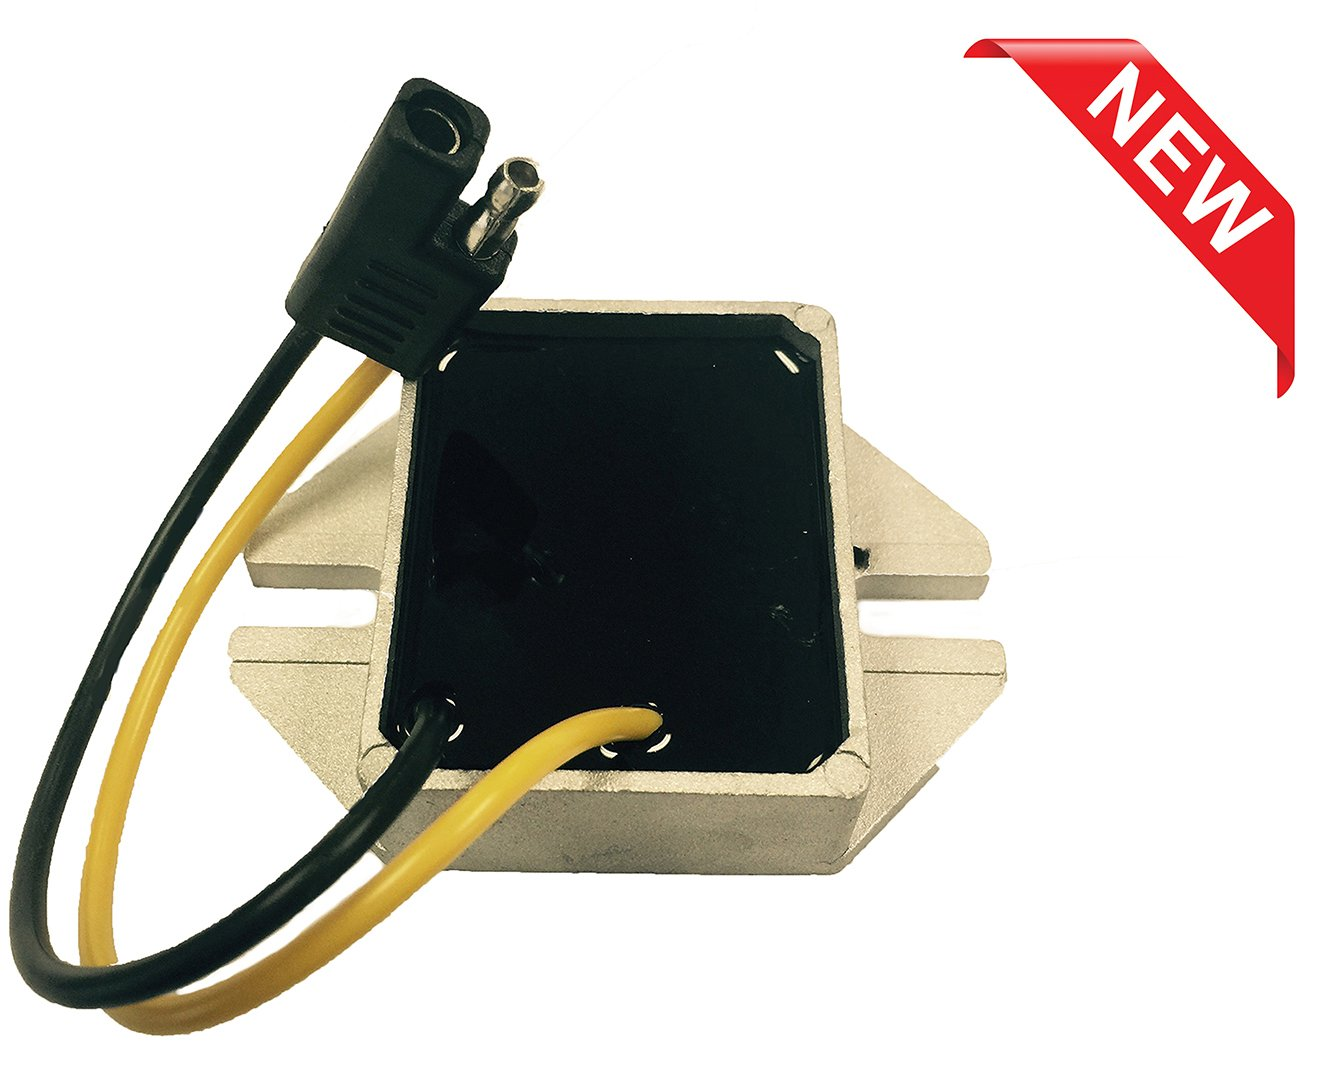 100/% New Voltage Regulator Rectifier For Polaris Snowmobile 340 440 500 550 600 700 800 EMS Global Direct